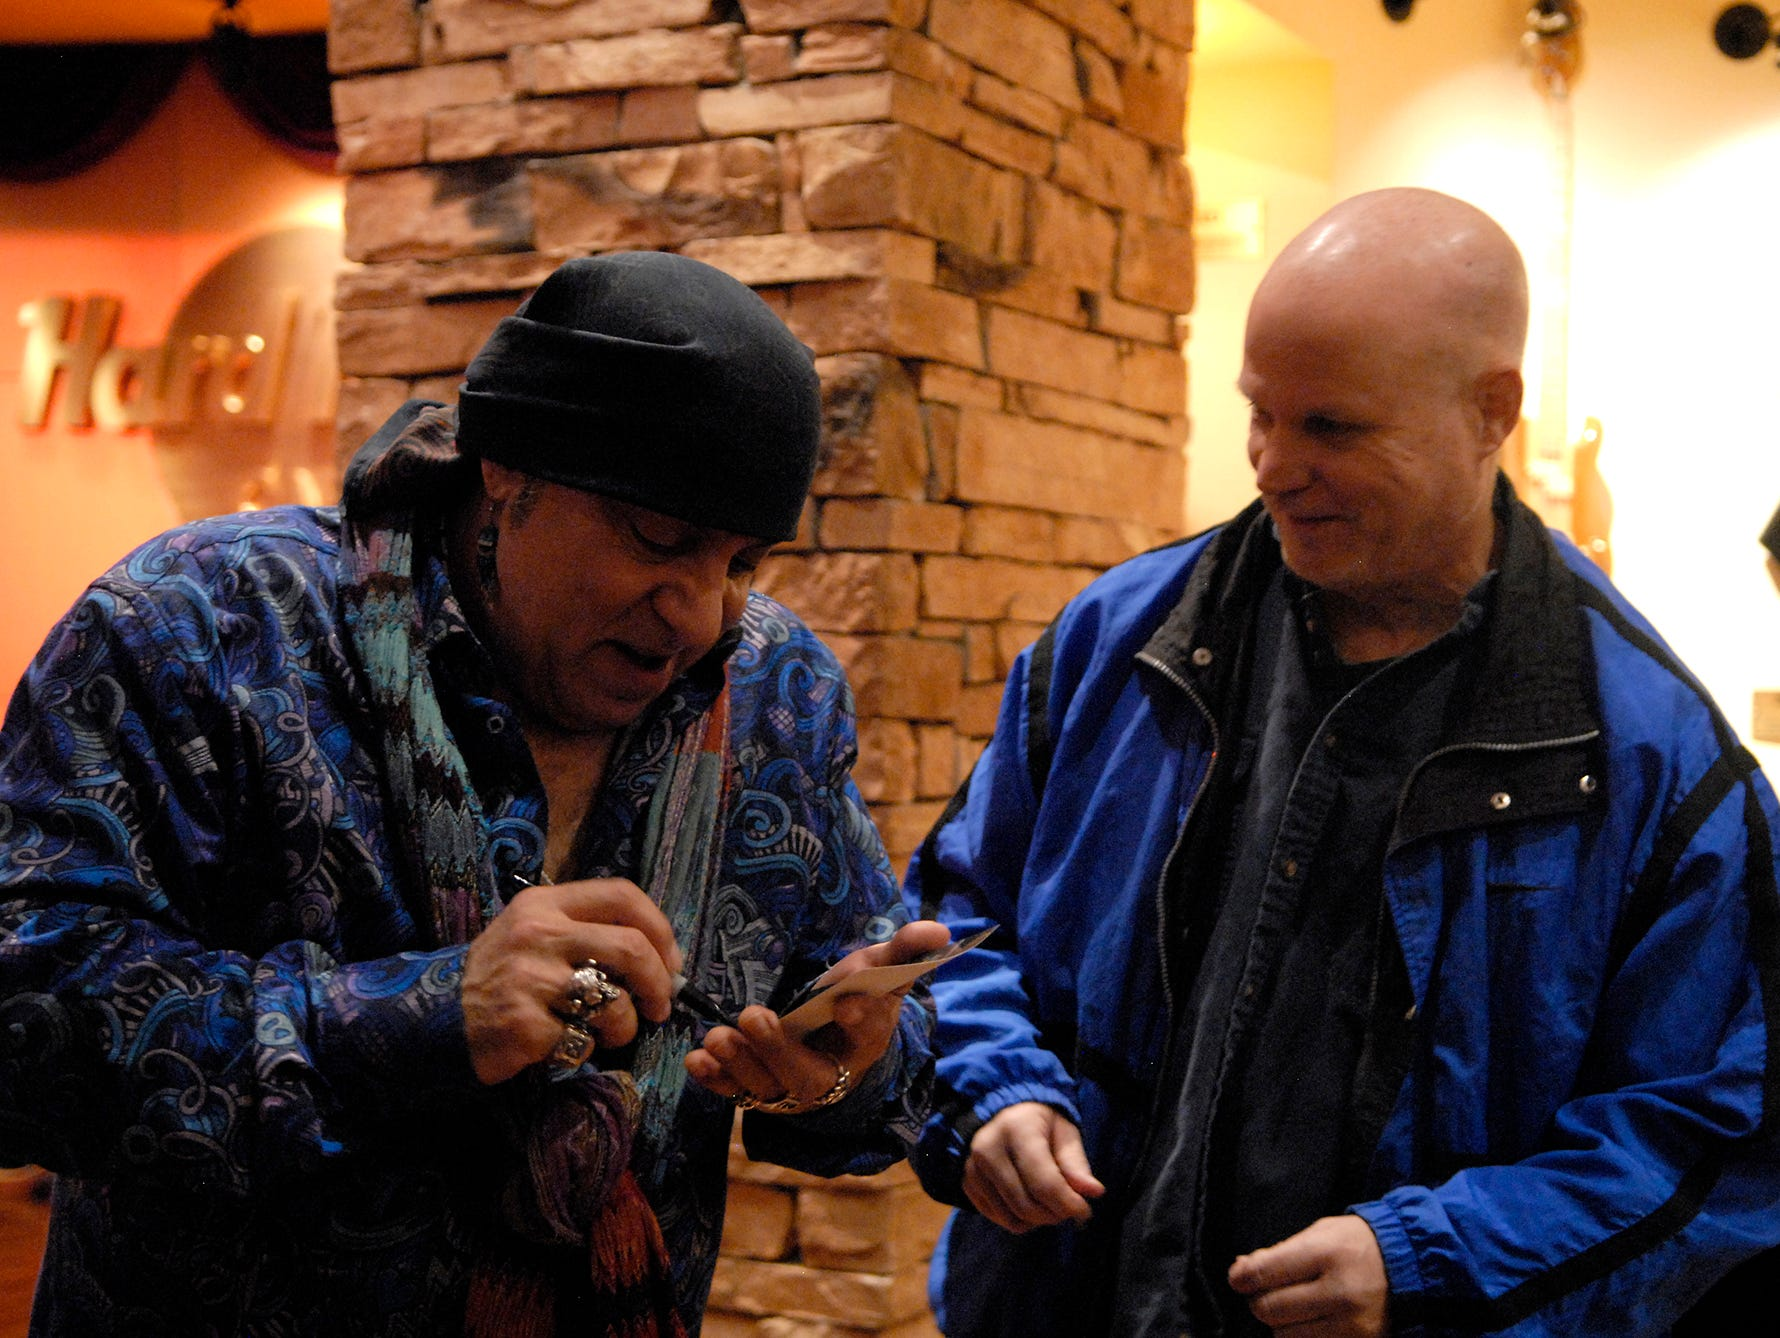 """Steven Van Zandt, of Little Steven and the Disciples and founding member of Bruce Springsteen's E Street Band, signs an autograph for a fan in between playing songs on his radio show """"Little Steven's Underground Garage"""" for Sirius XM Radio at The Hard Rock Cafe on Fourth Street Live!.  July 30, 2018"""